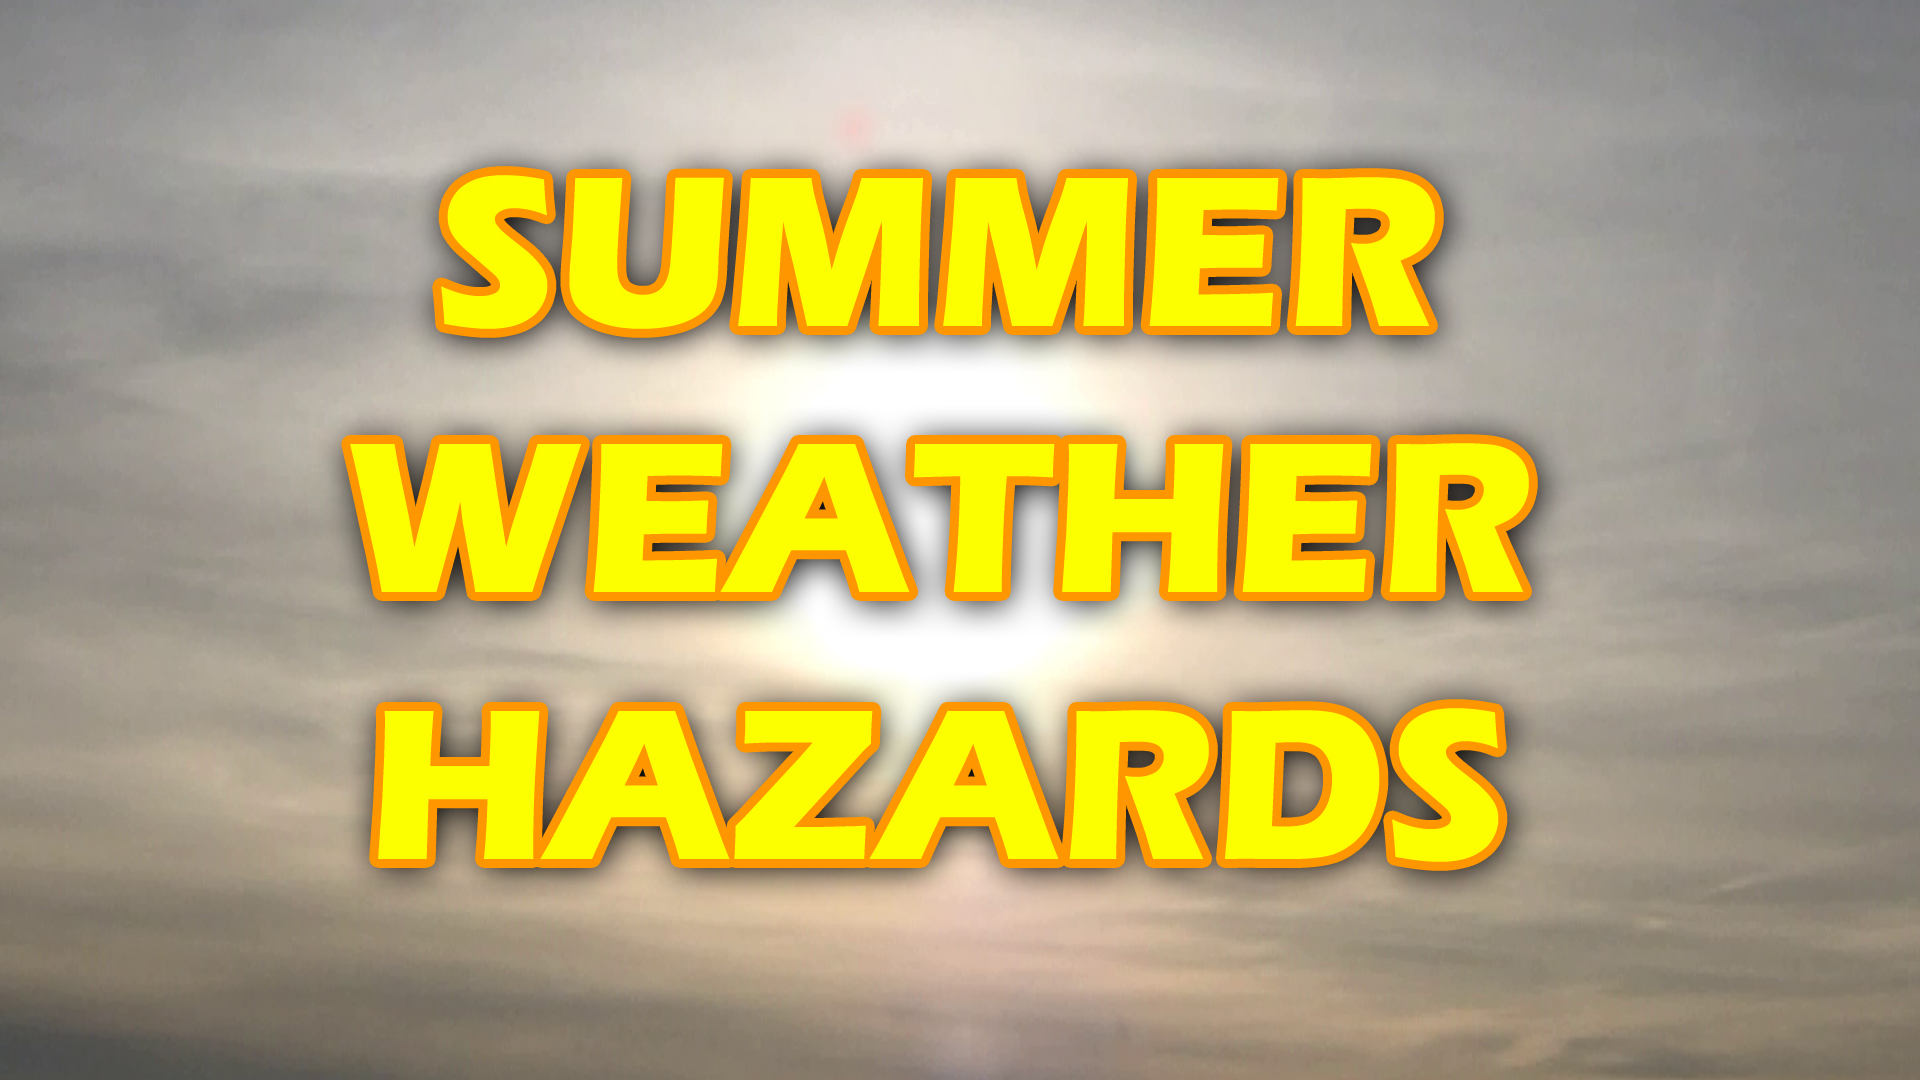 Summer Weather Hazards heat ozone uv radiation